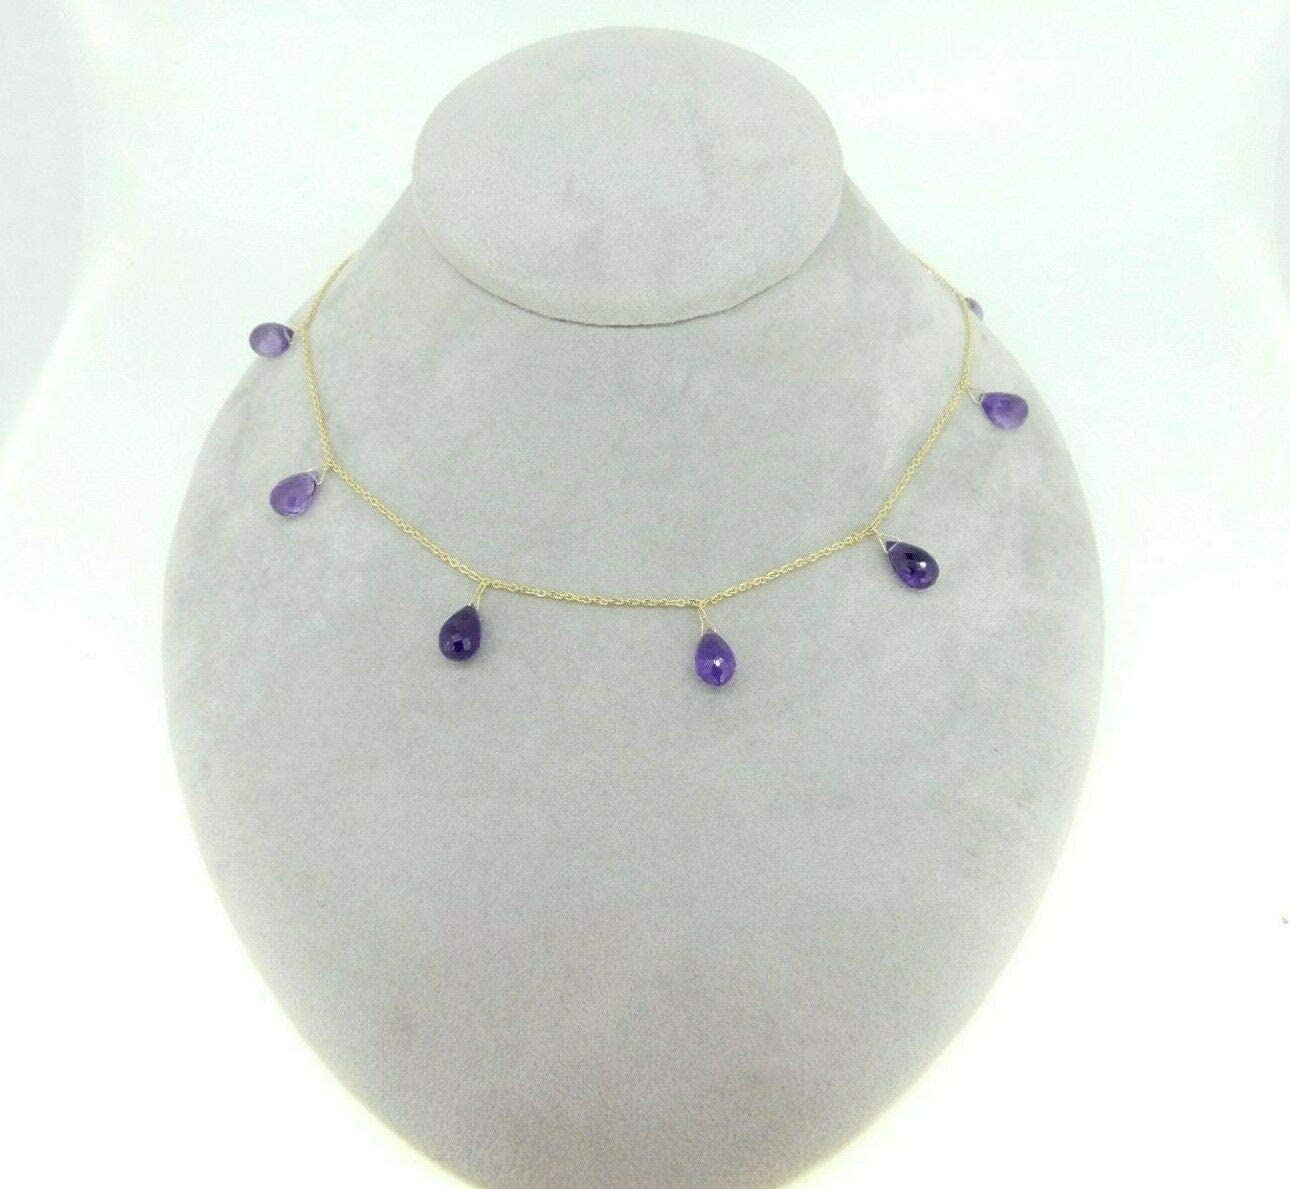 14k Yellow Gold 34 Carat Neck Briolette Oklahoma City Mall Super sale period limited Amethyst Natural Genuine